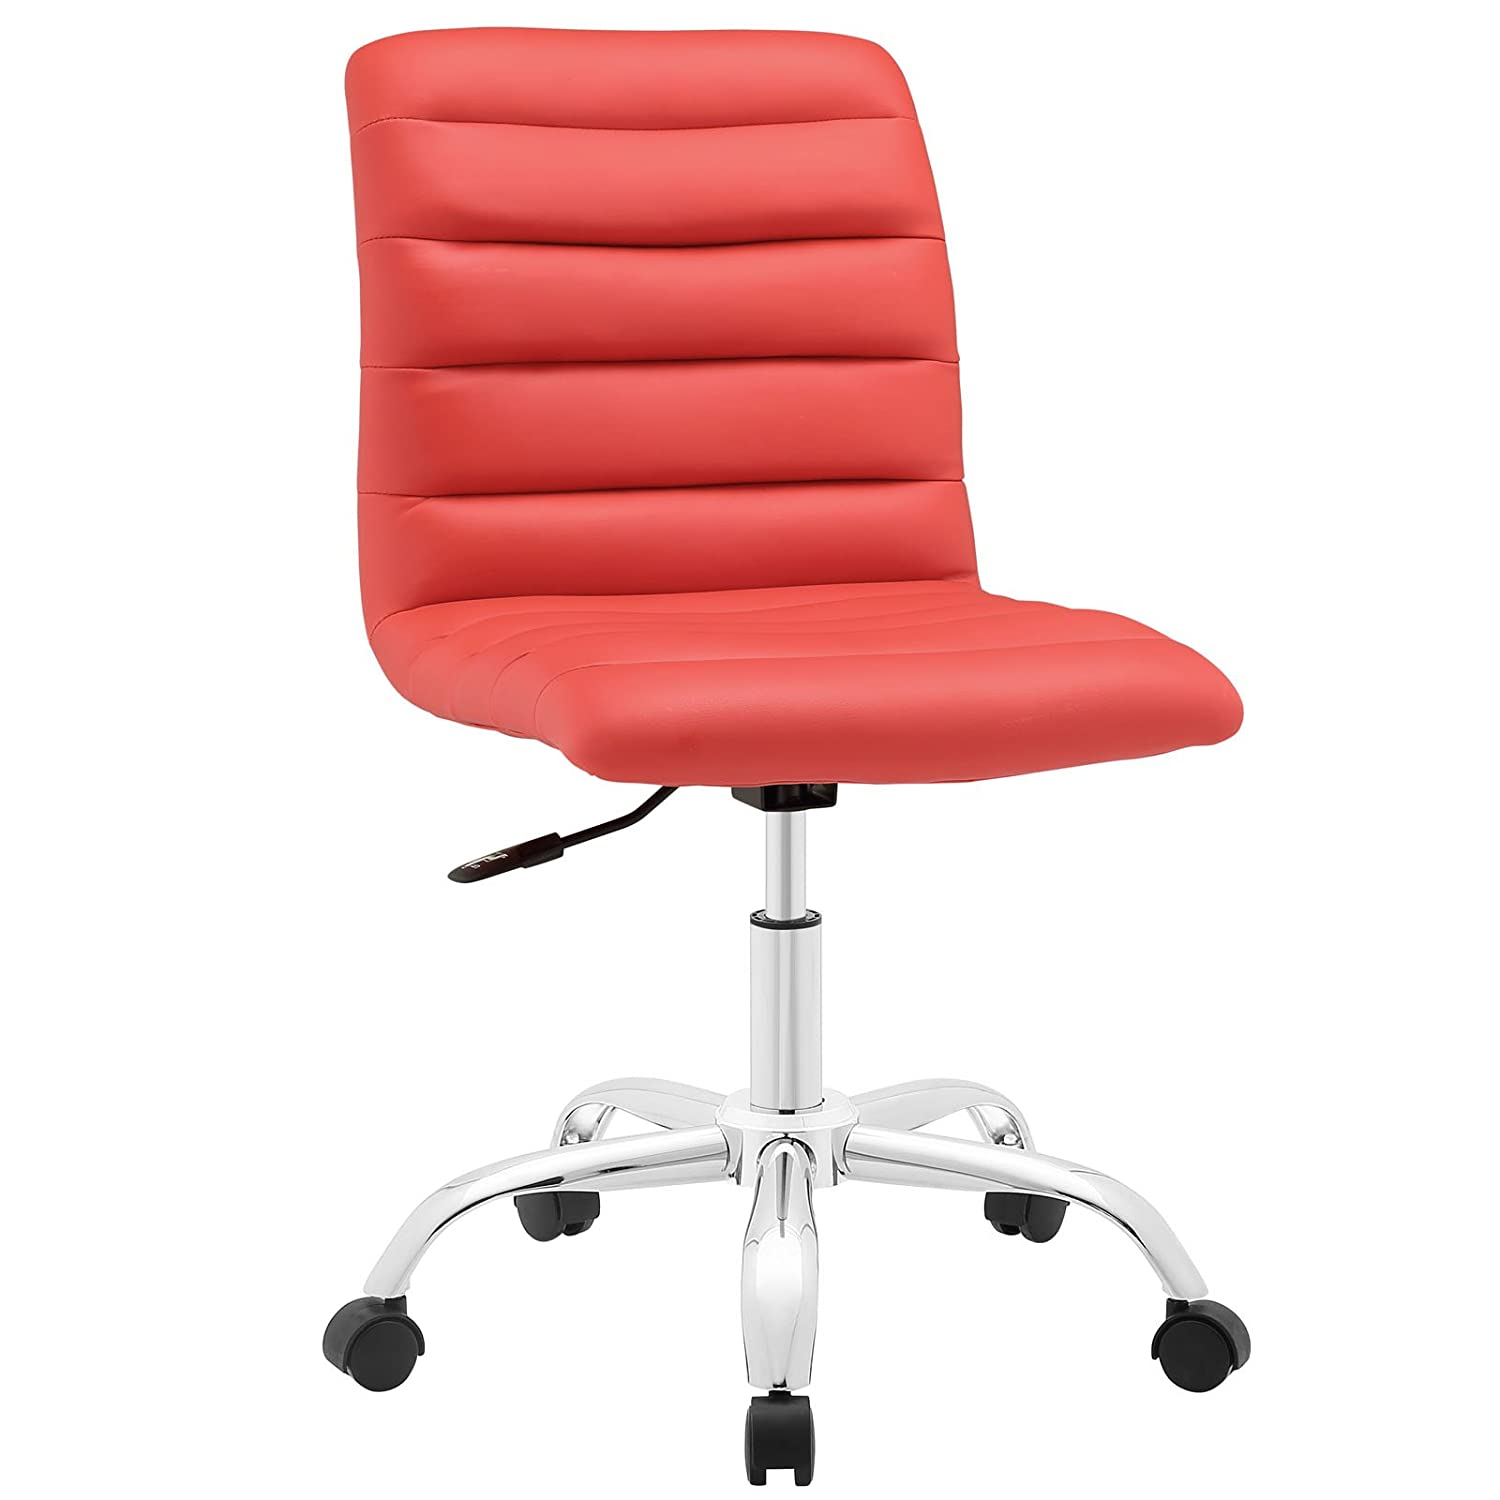 Modway Ripple Ribbed Armless Mid Back Swivel Computer Desk Office Chair In Red